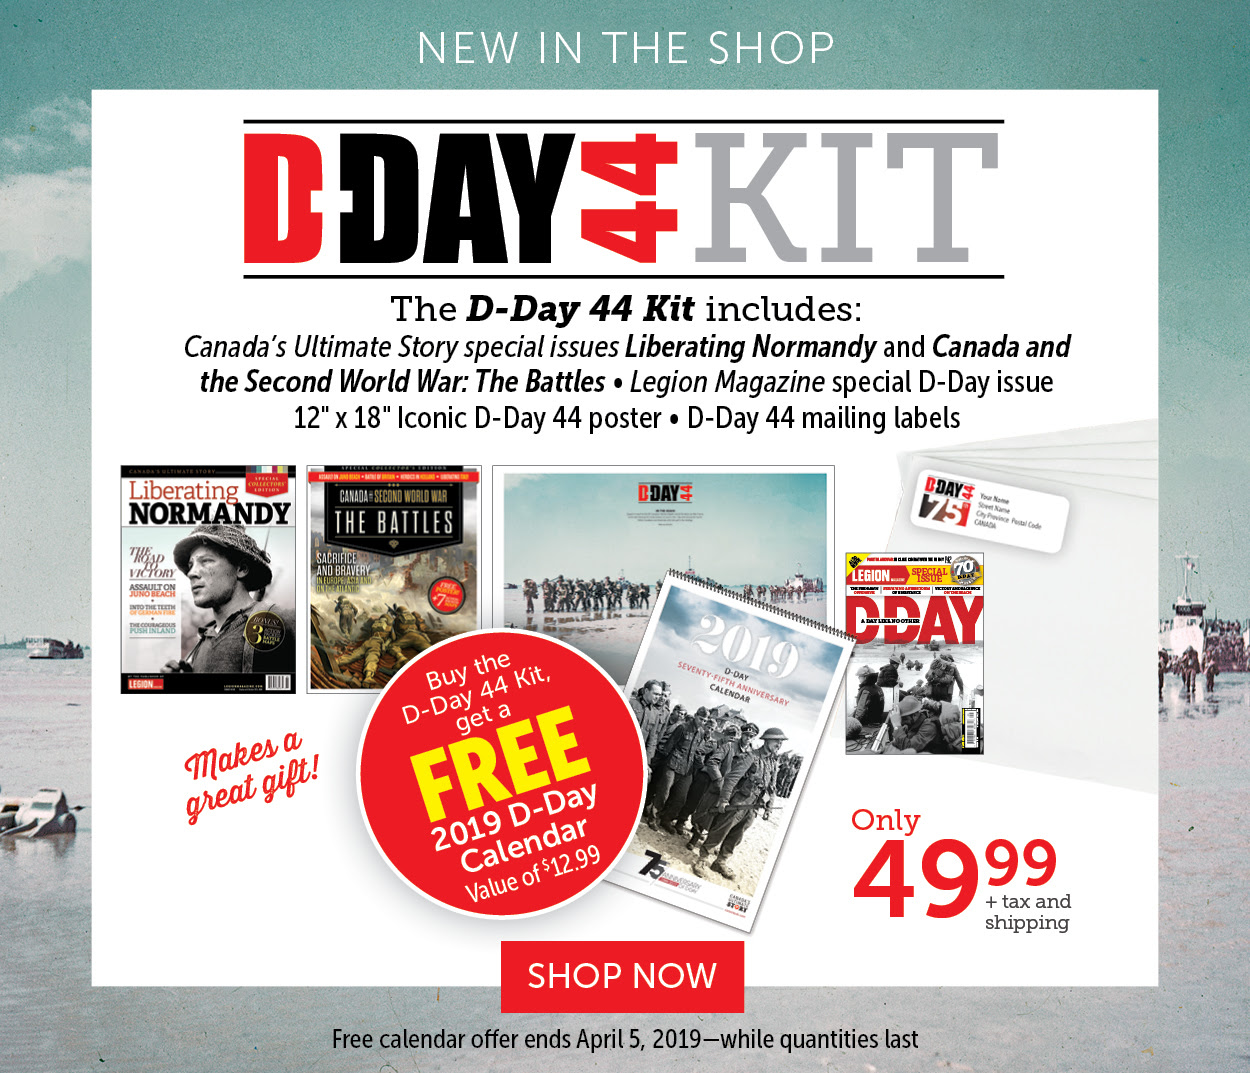 D-DAY Kit | NEW IN SHOP